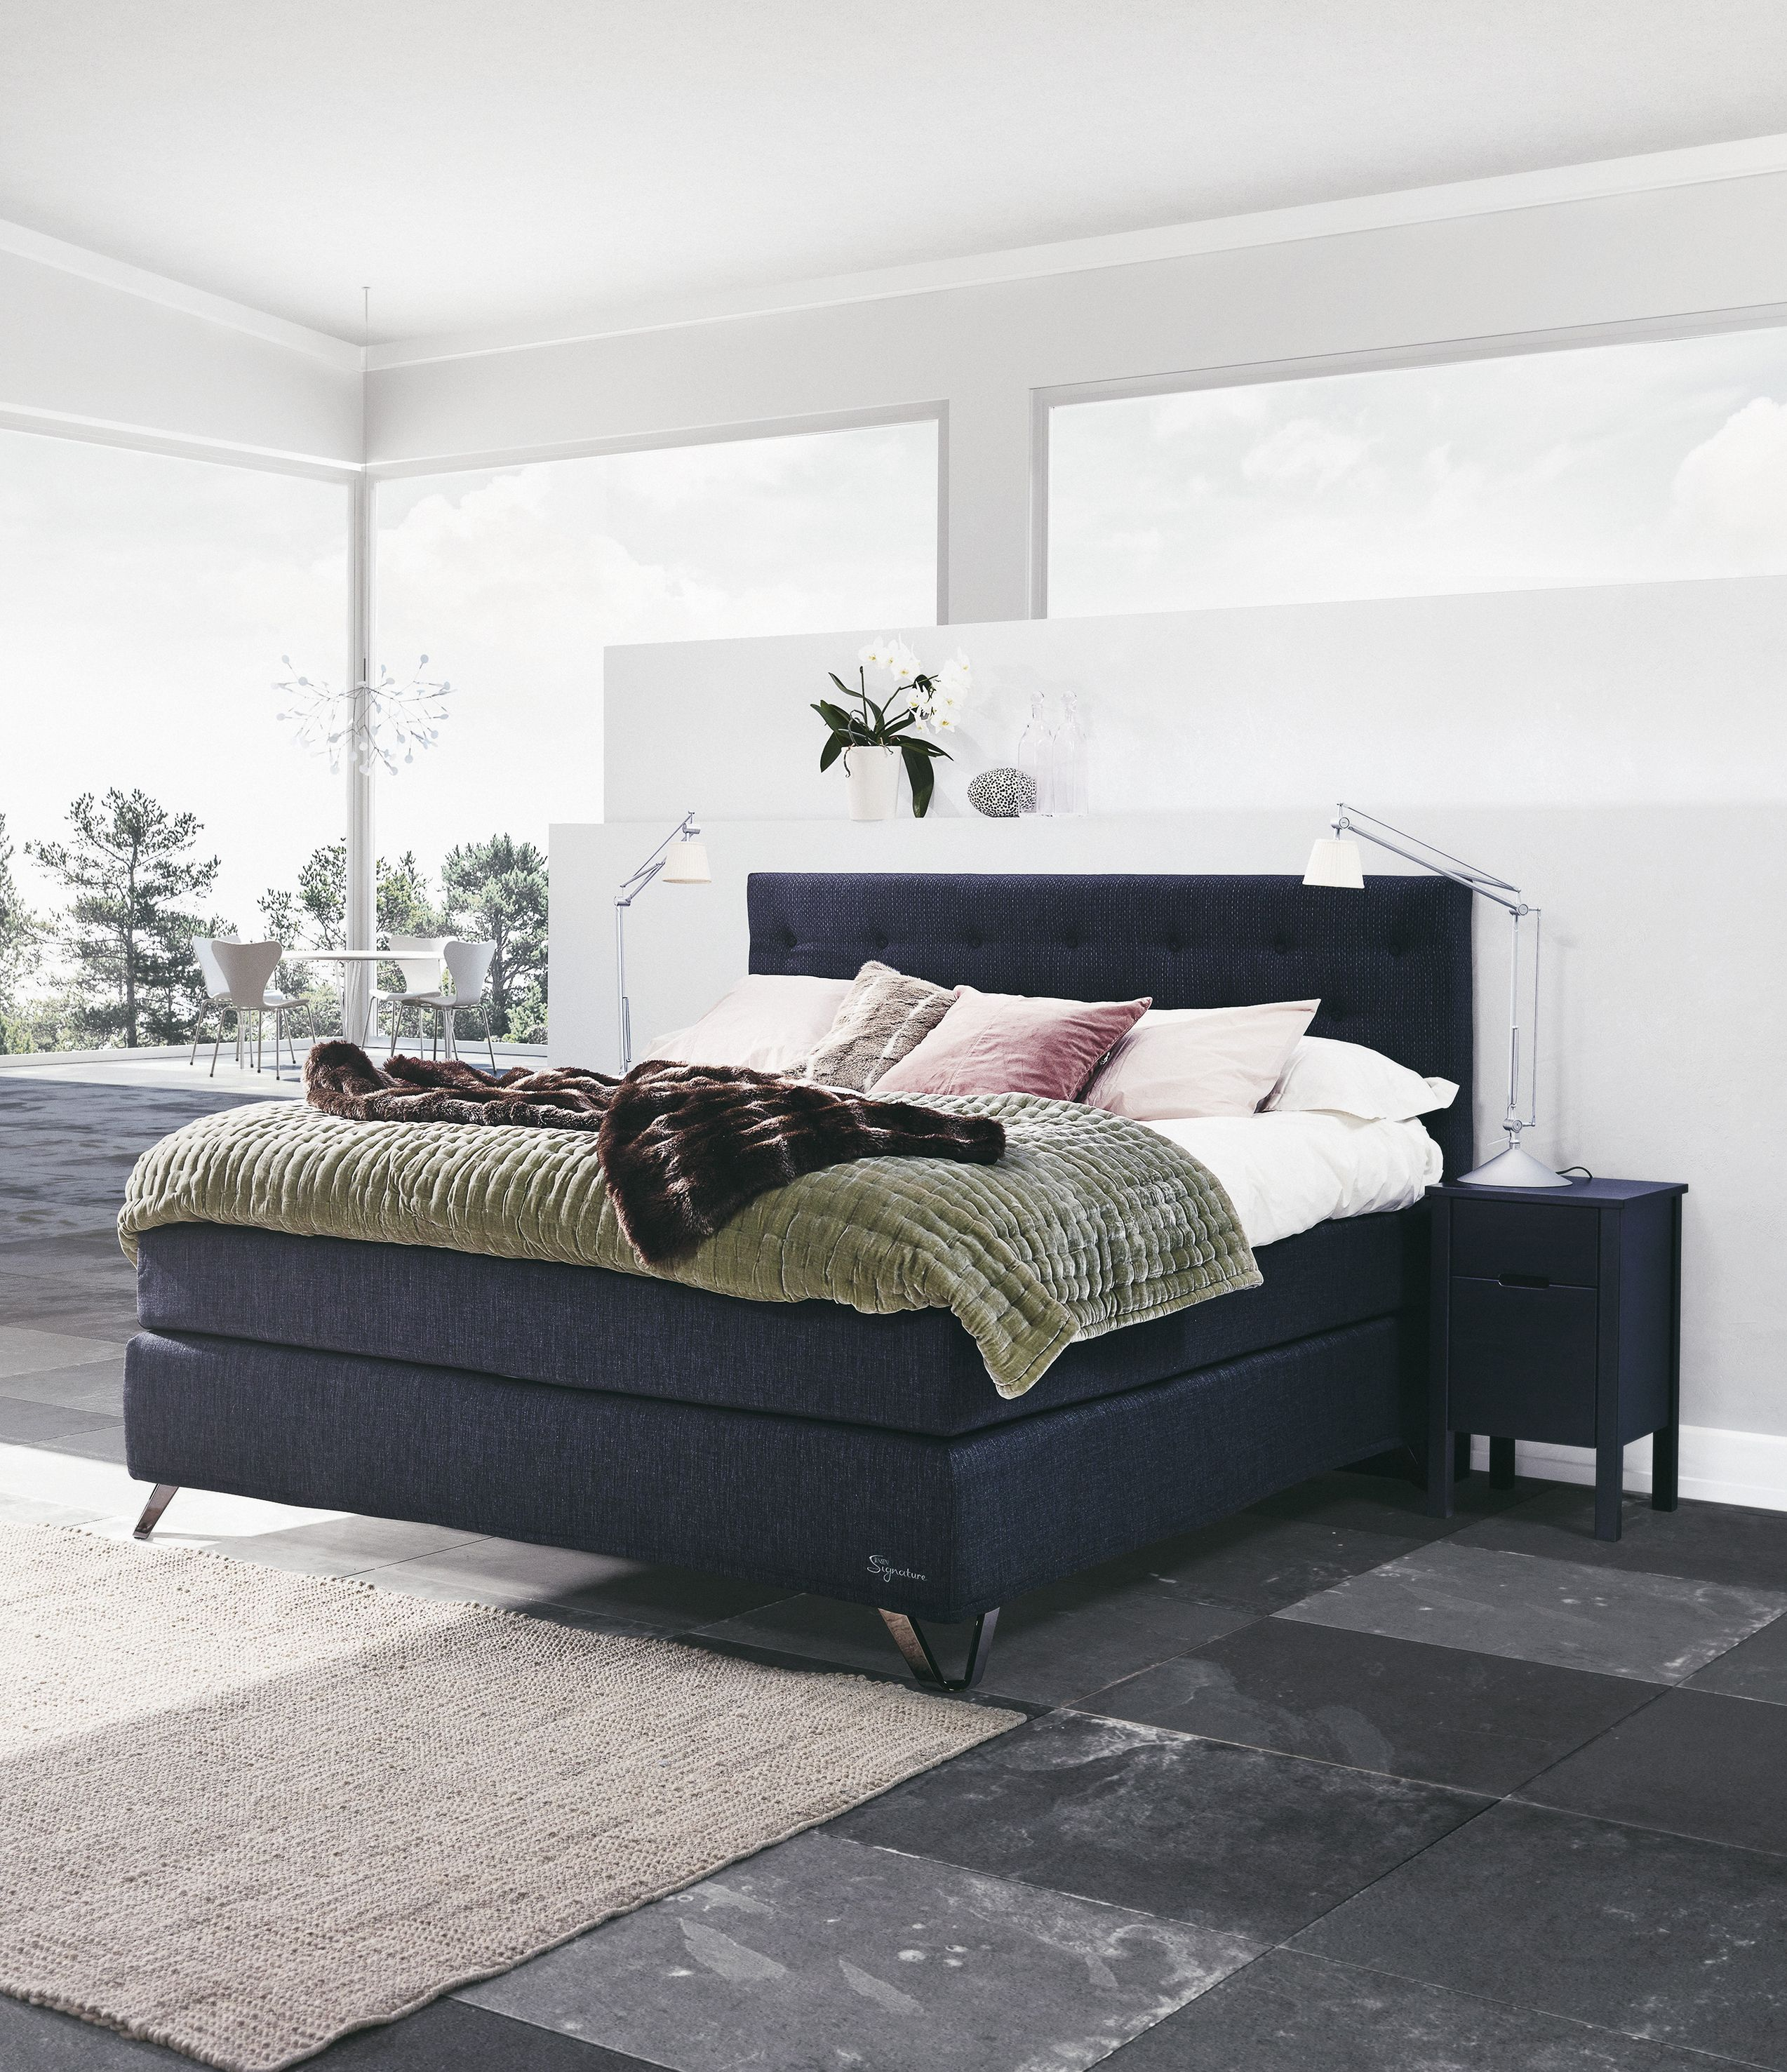 Jensen Signature J6 Continental Bed With Anthracite Textiles